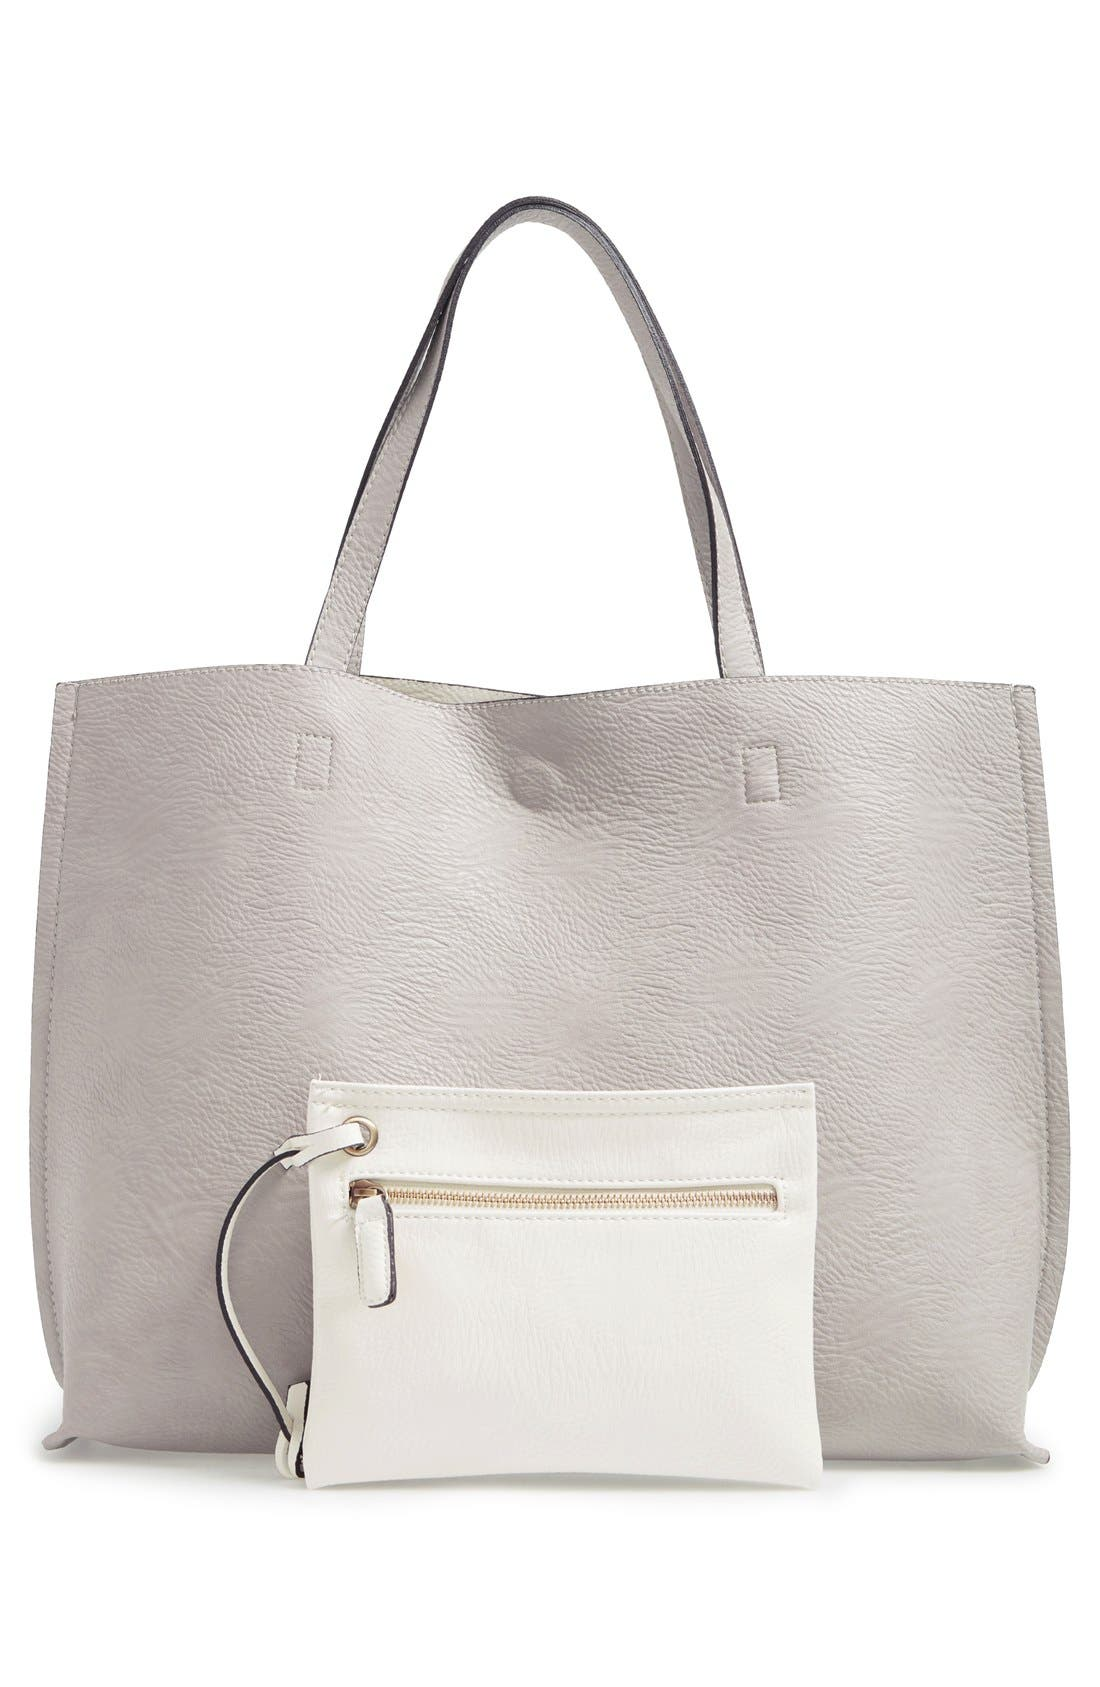 Reversible Faux Leather Tote & Wristlet,                             Main thumbnail 1, color,                             Grey/ Ivory